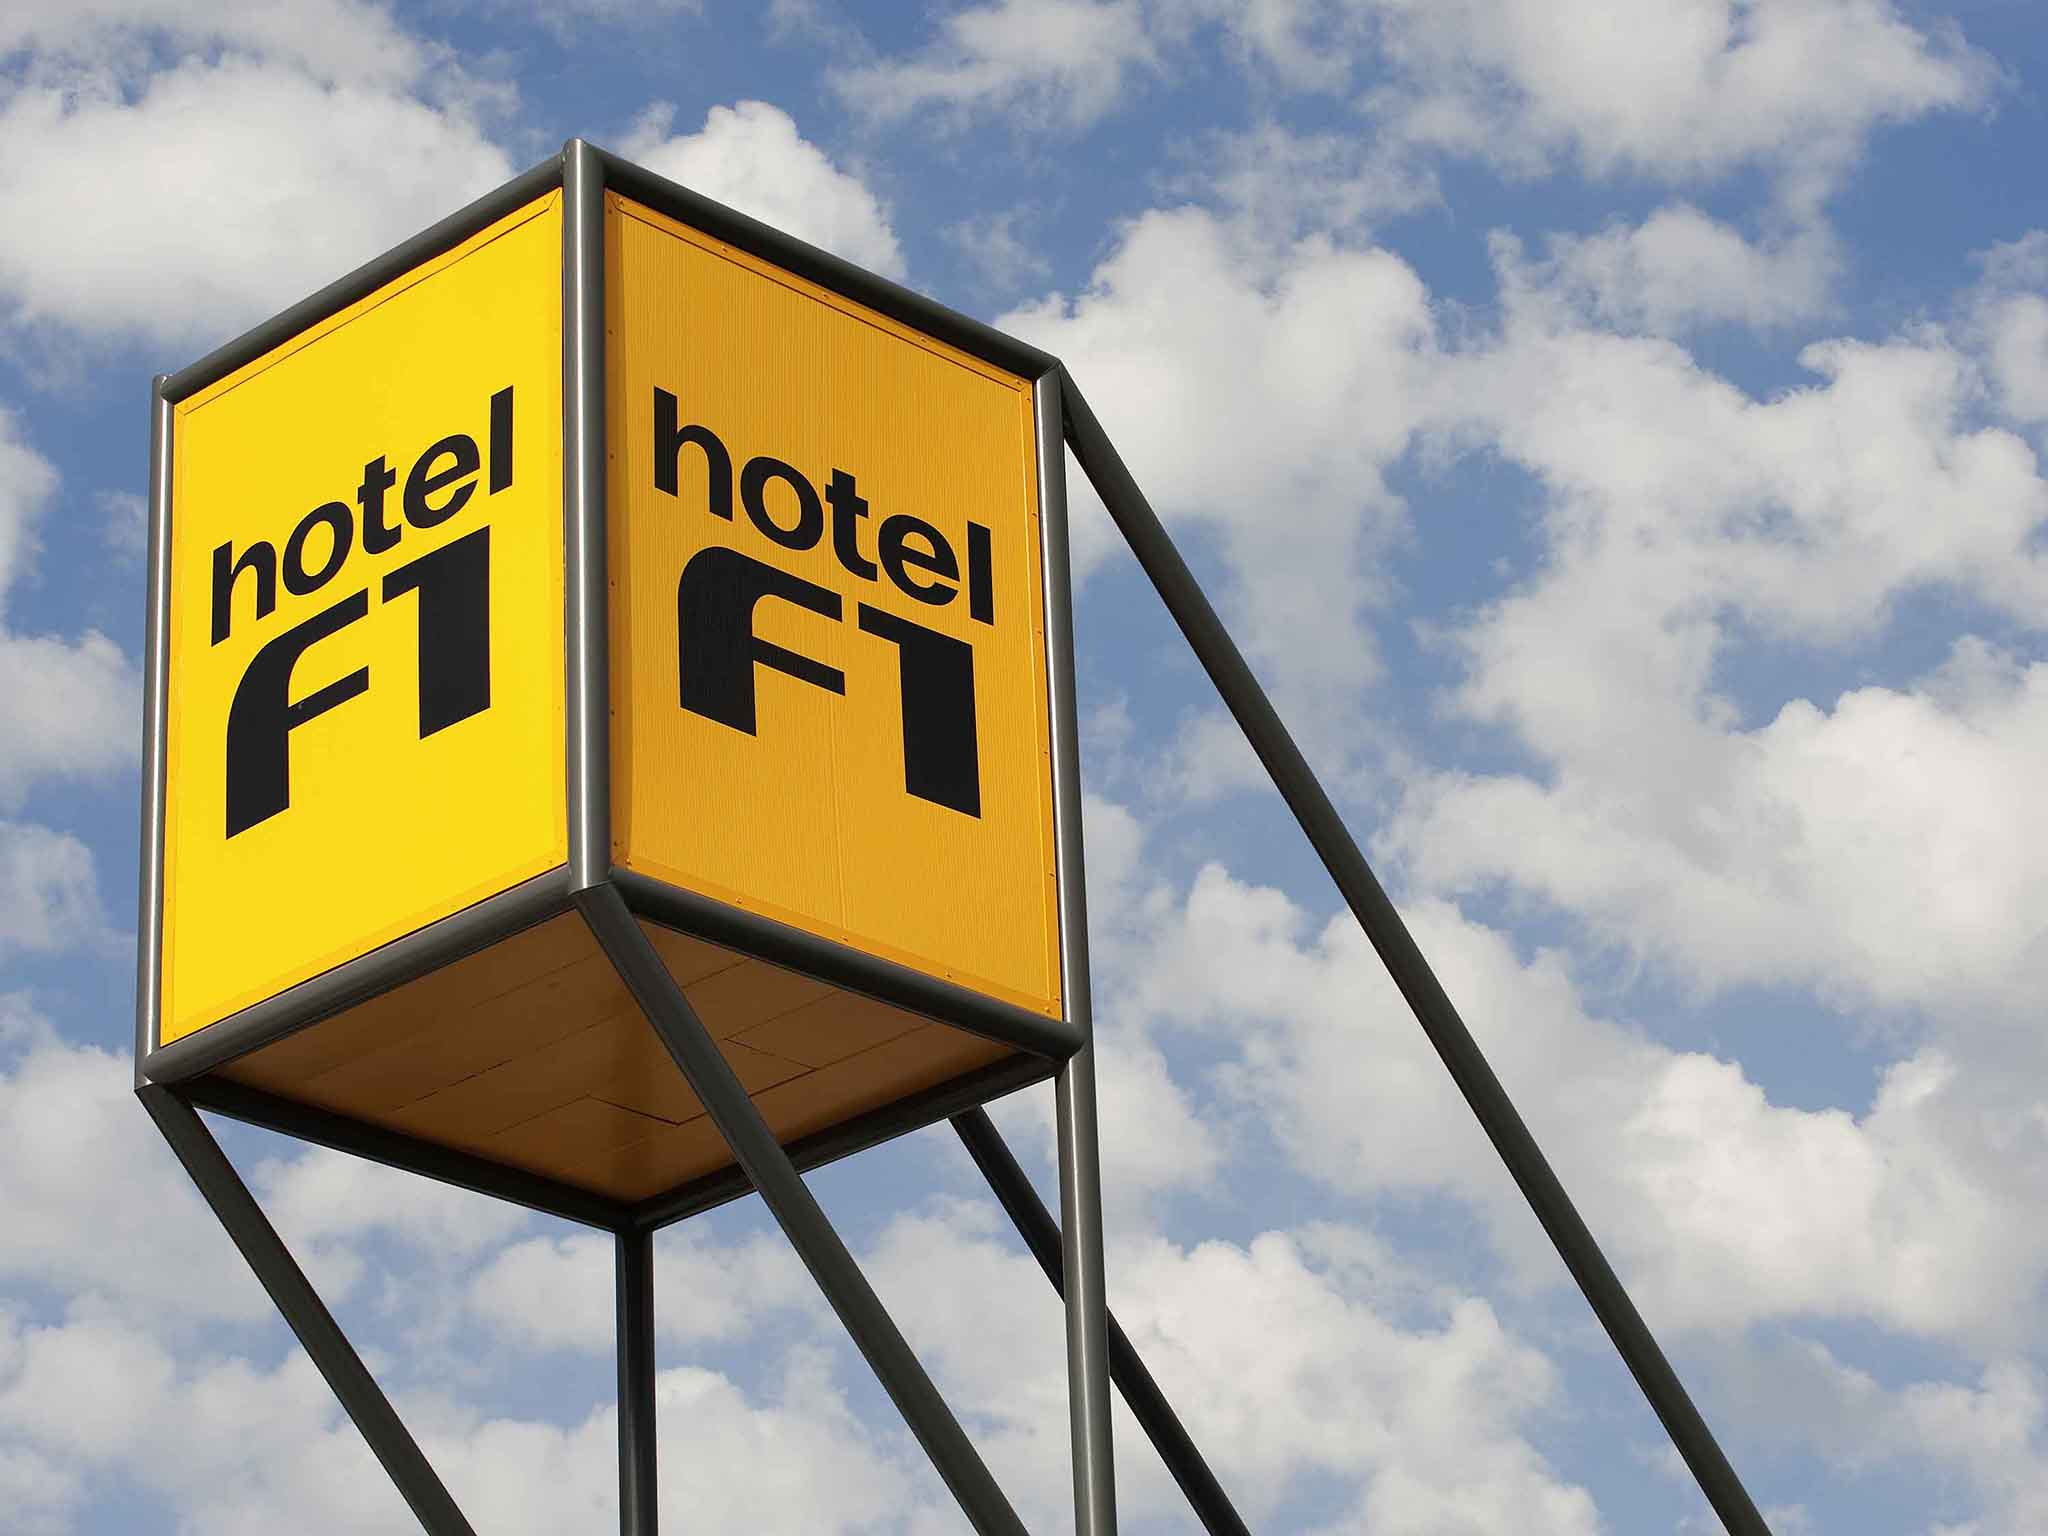 Hotell – hotelF1 Fougères